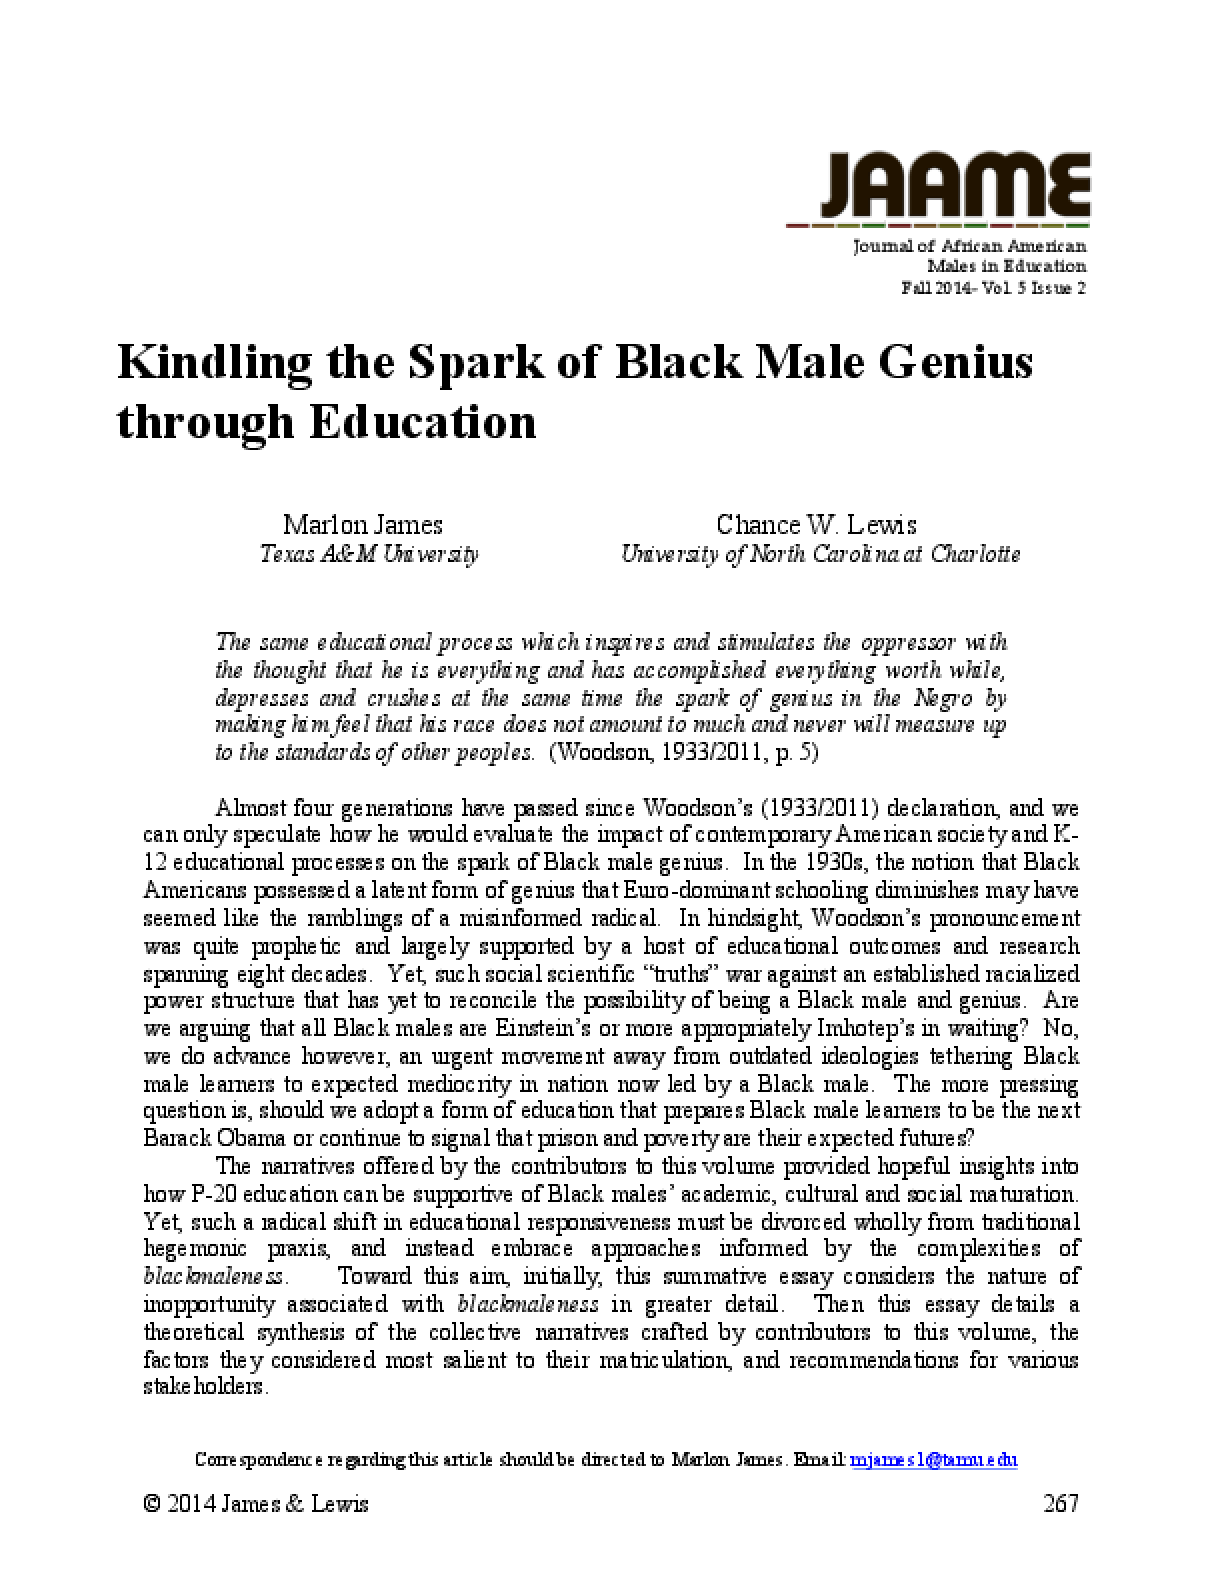 Kindling the Spark of Black Male Genius through Education